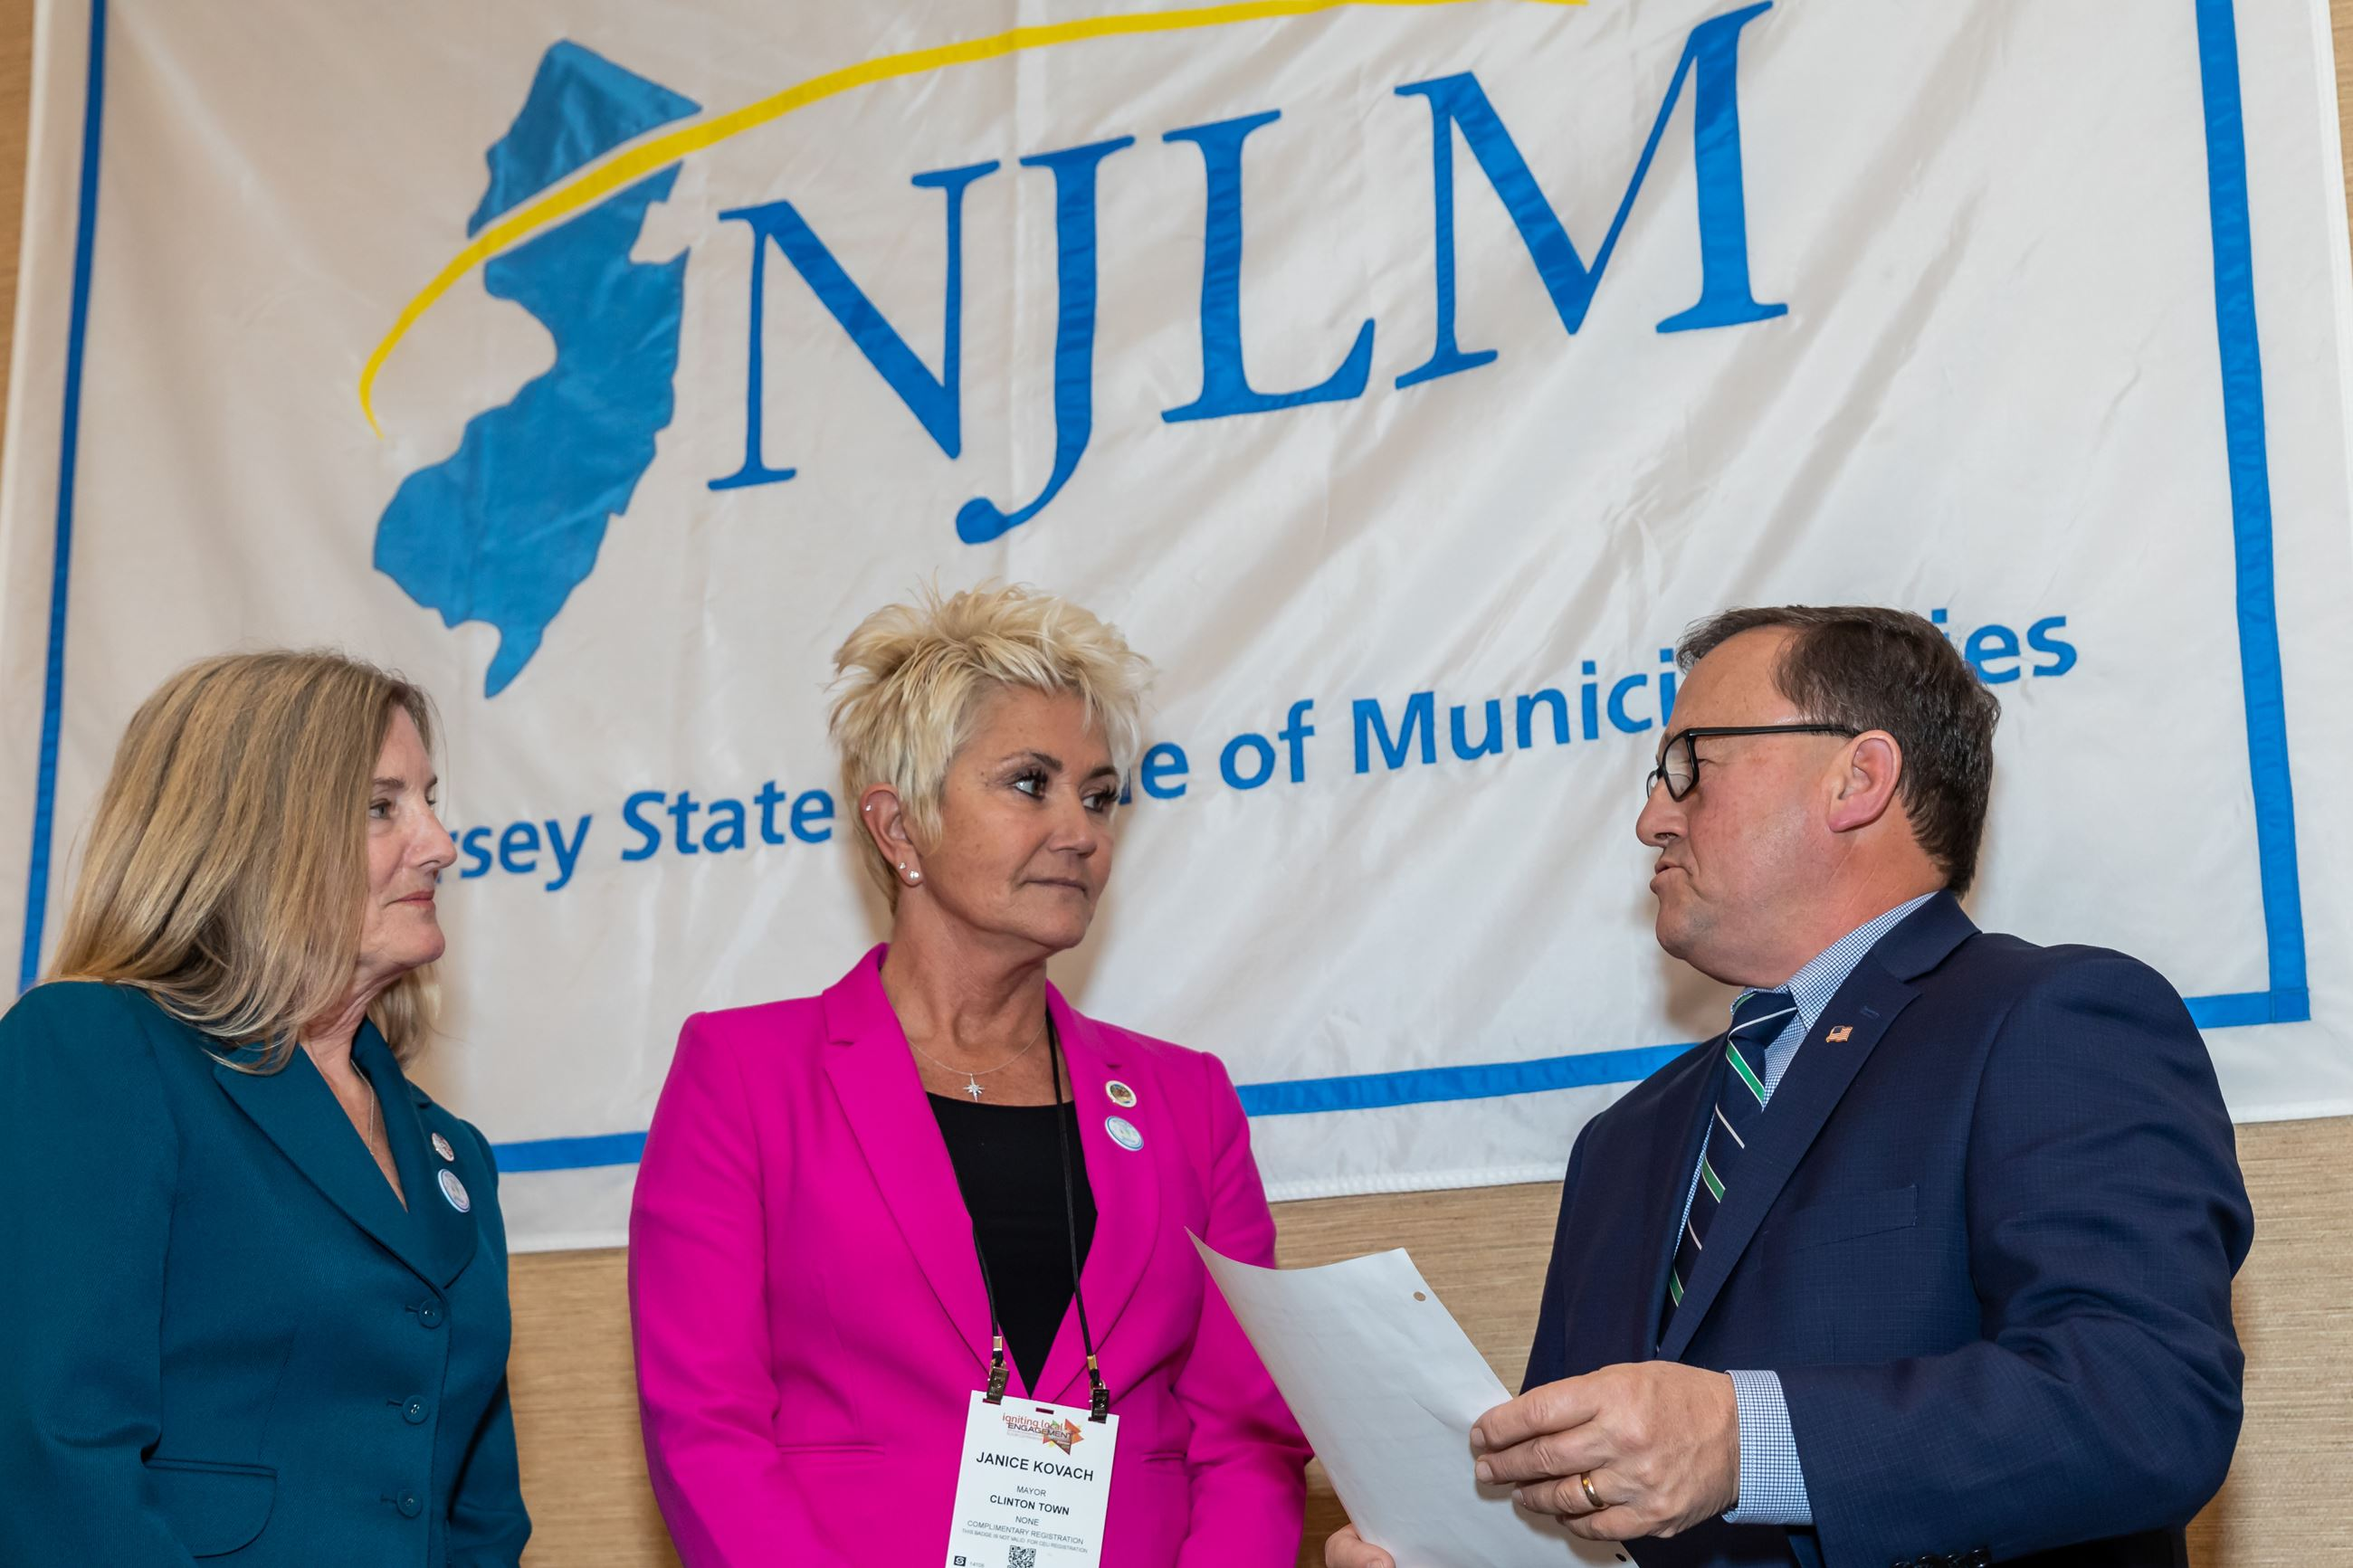 Howard and Kovach sworn in as NJLM officers